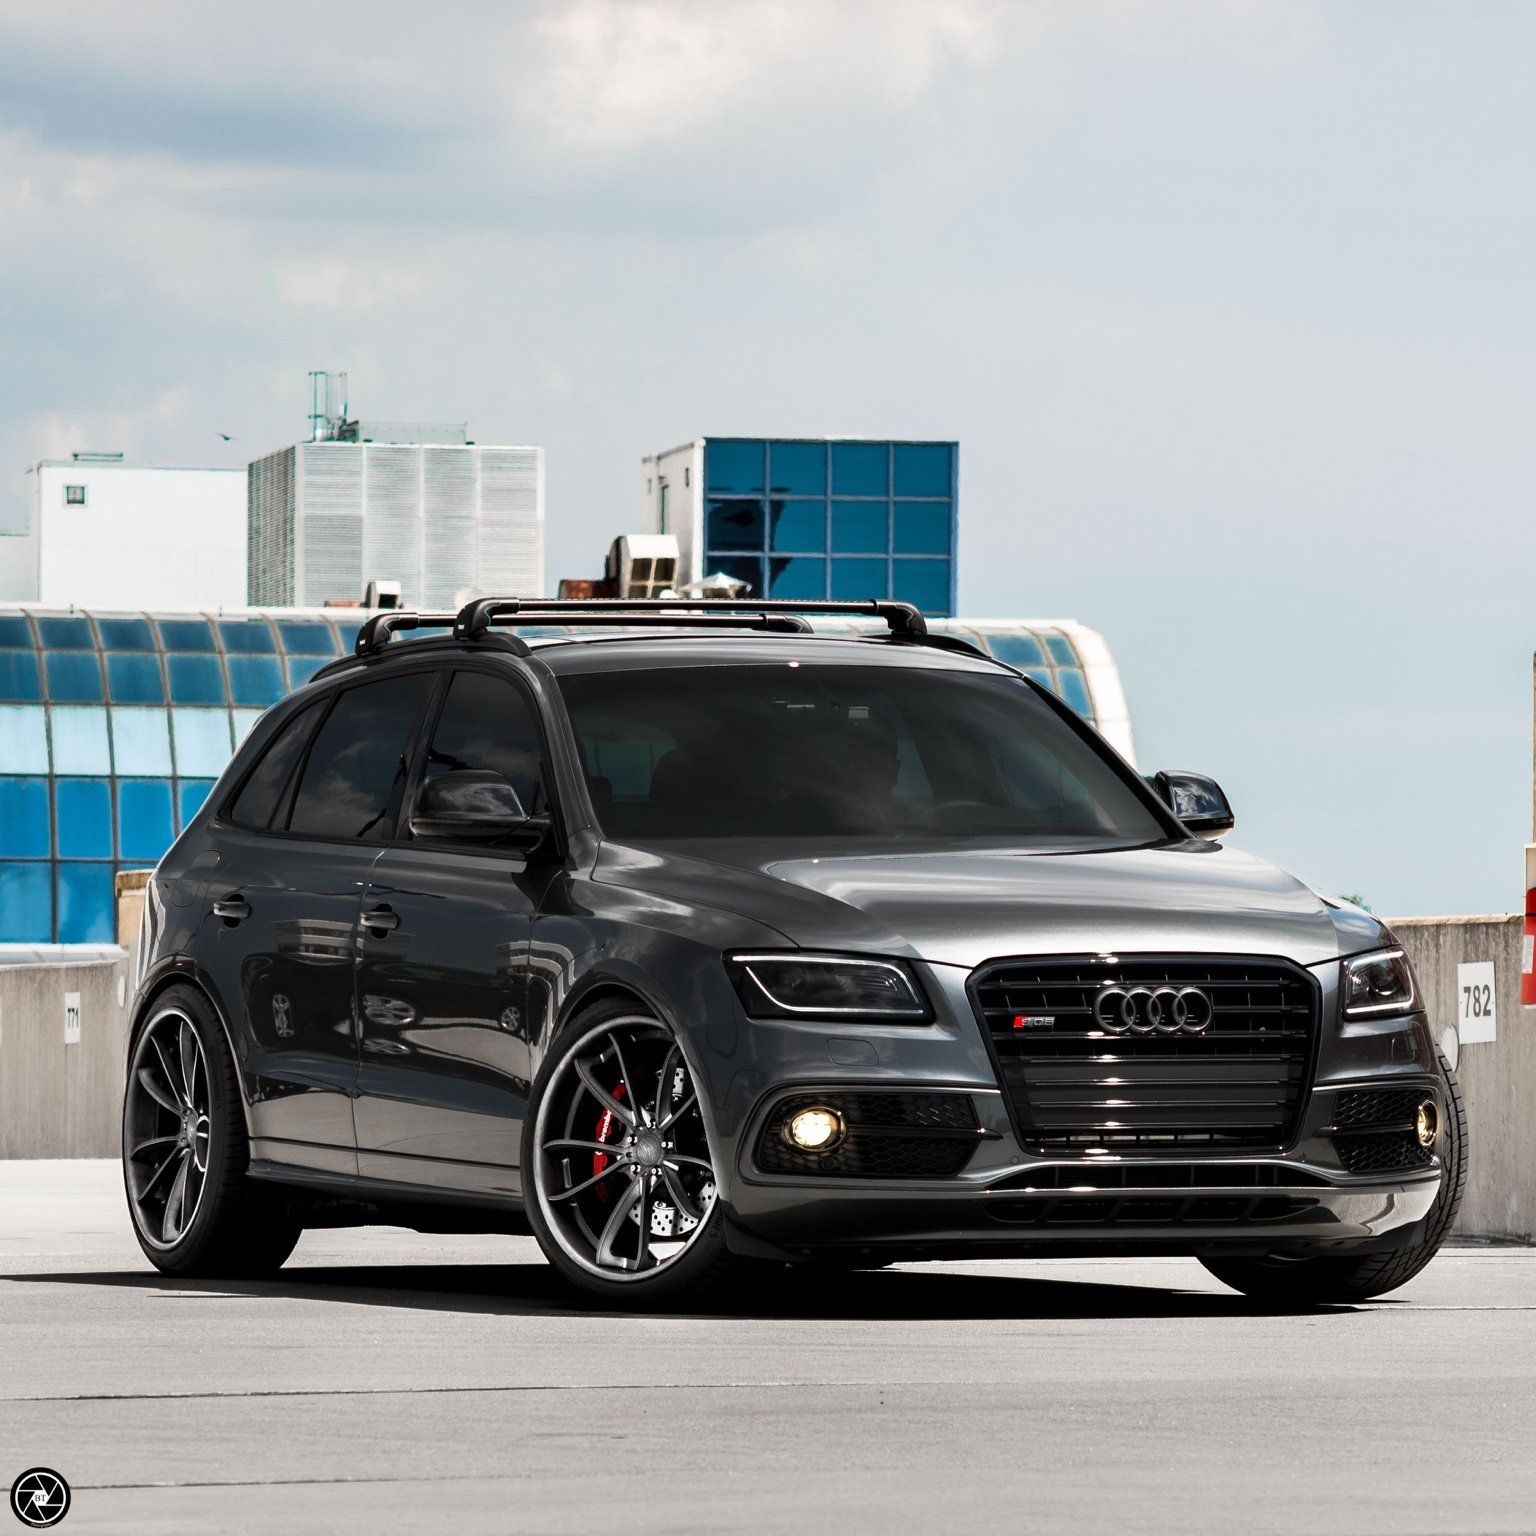 Audi Q5 Modified Lovely Random Picture Of Your Q5 Page 90 Love for Audi Audi Cars-2618 Of Best Of Audi Q5 Modified-2618